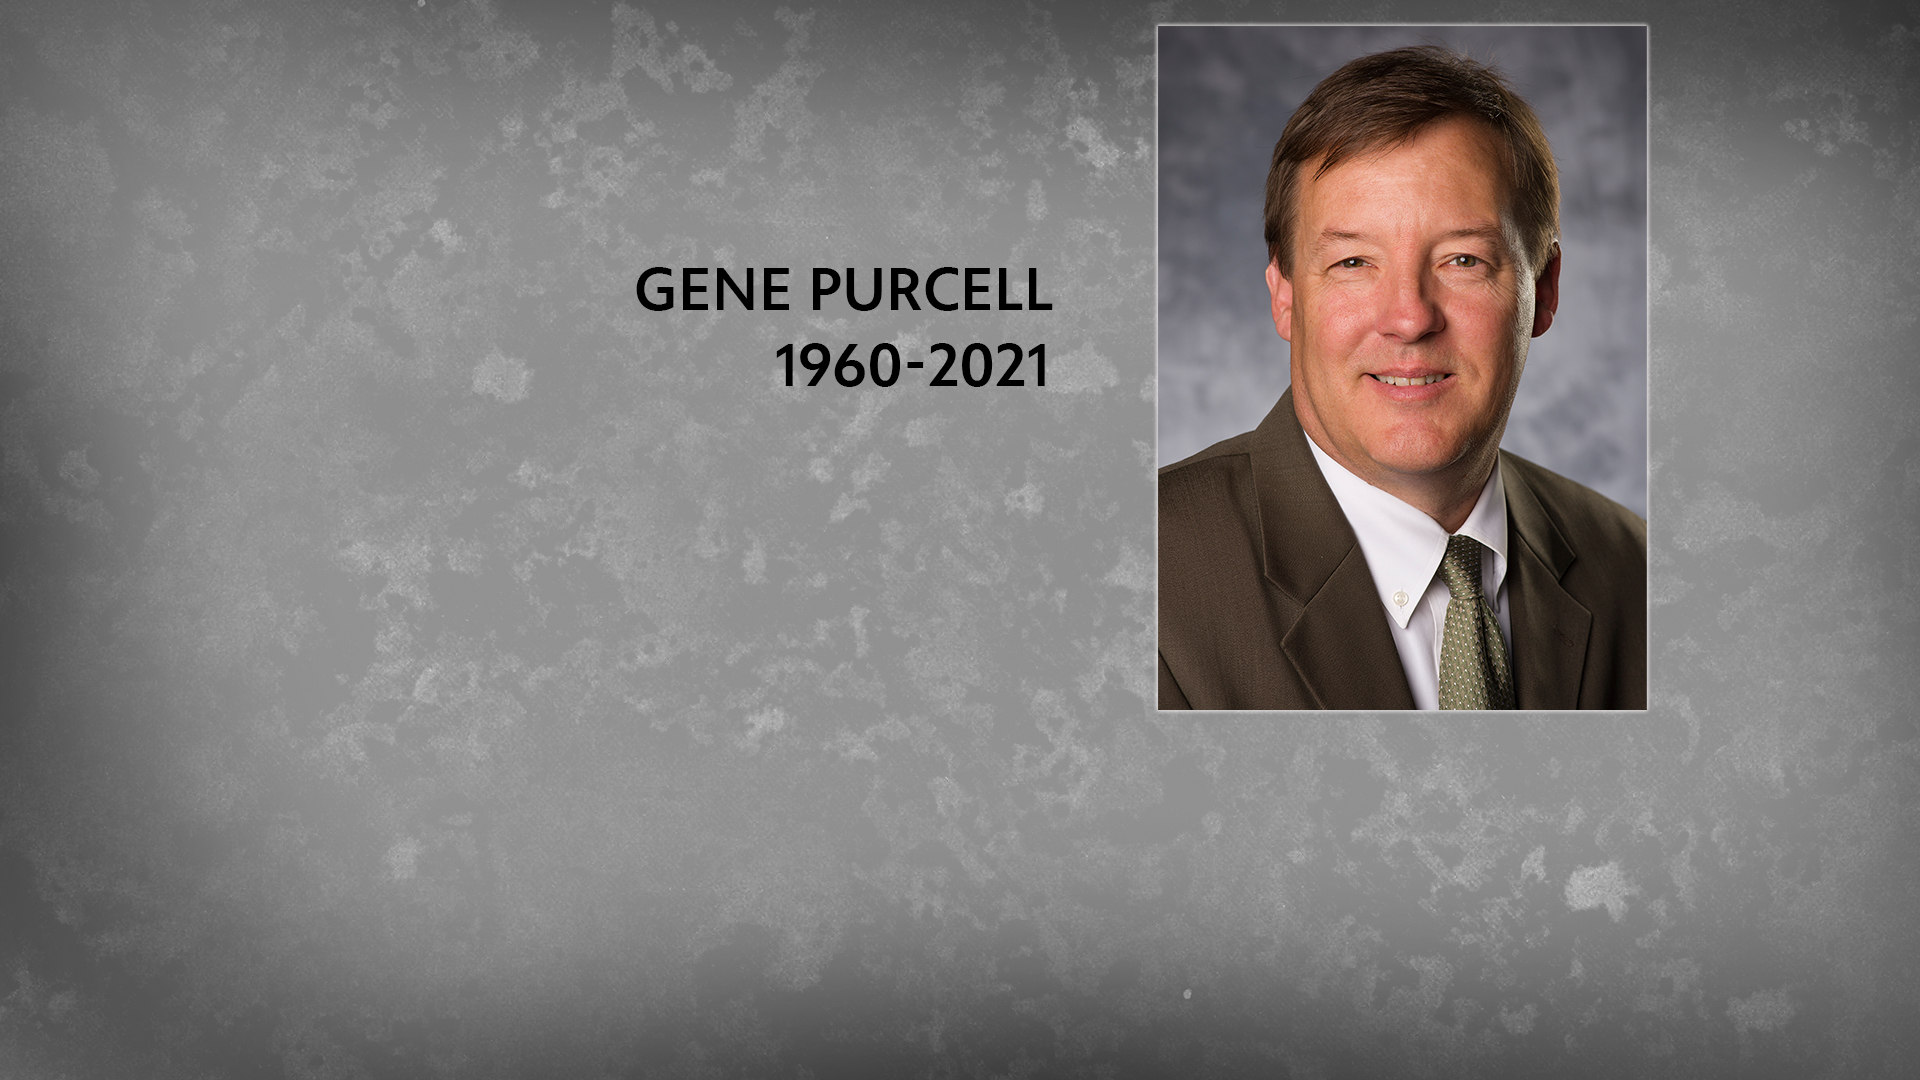 """A portrait of Gene Purcell overlaying a plain grey background with """"Gene Purcell (1960-2021) in black text"""